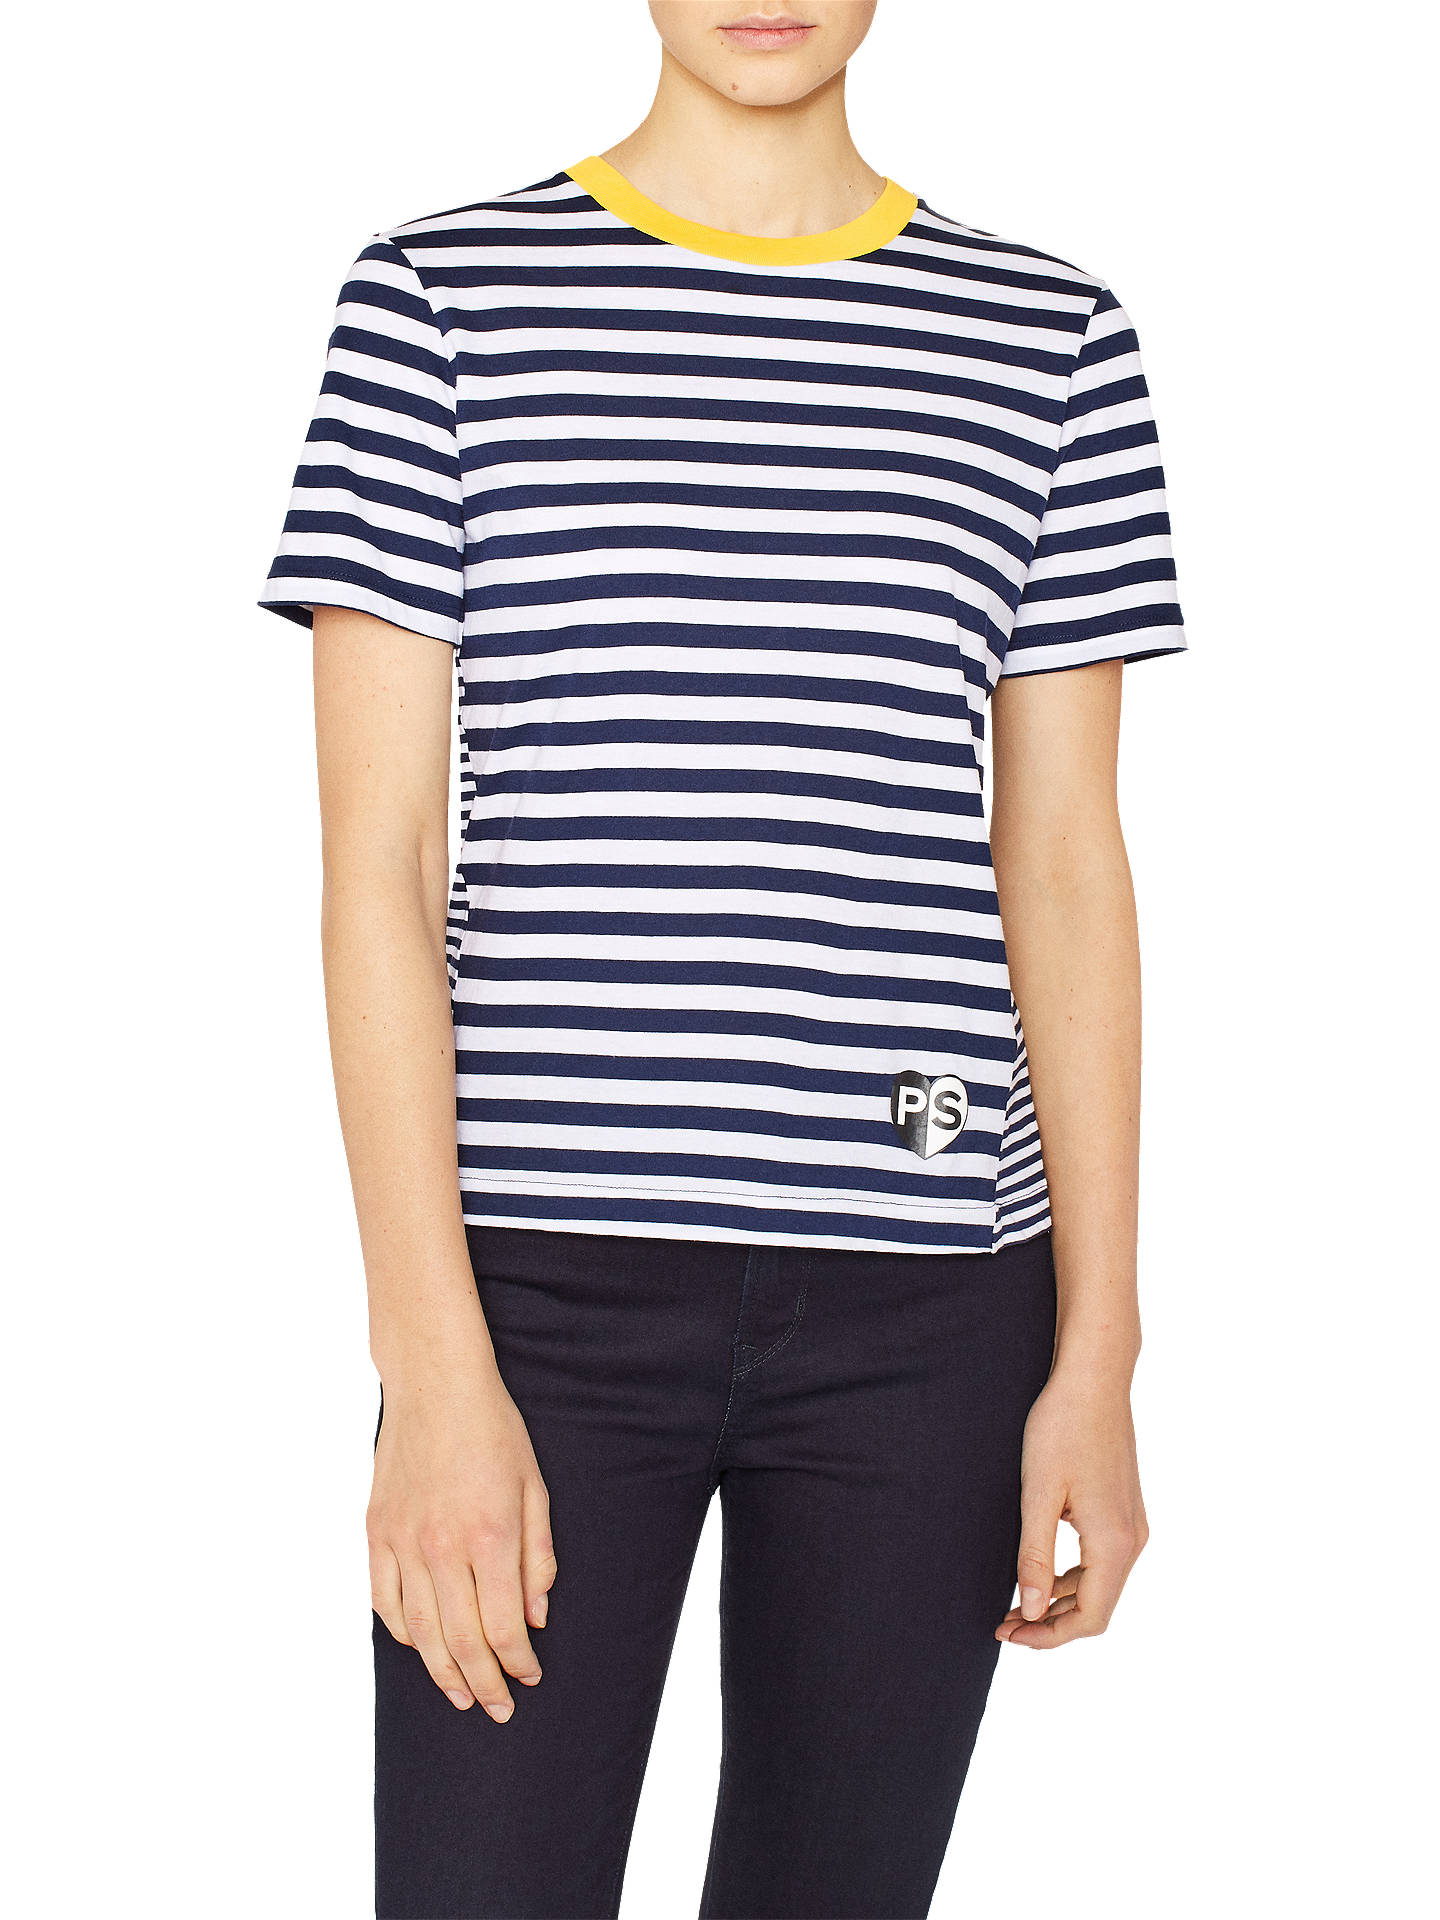 9a840dbc31 PS Paul Smith Stripe T-Shirt, Navy/White at John Lewis & Partners